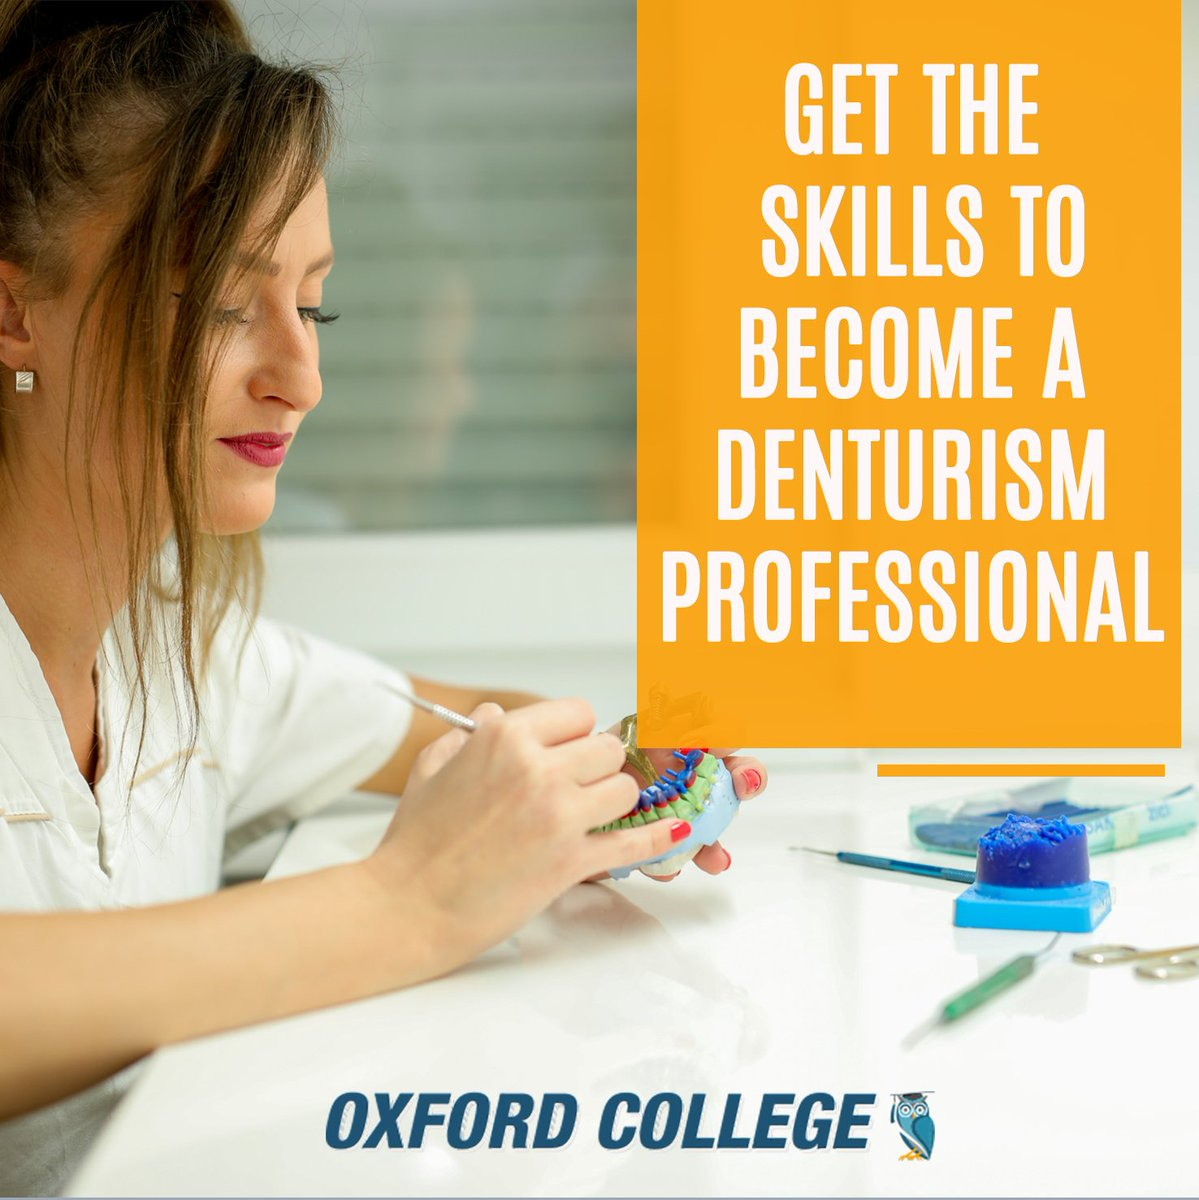 #Denturism is one of the most unique and highly skilled #healthcare professions in #NorthAmerica and #OxfordCollege is one of the only private colleges in #Ontario that offers this program.  Interested? Discover more: https://hubs.ly/H0ryFdP0  #OxfordCollege #OxfordEdupic.twitter.com/YomuyKd48M